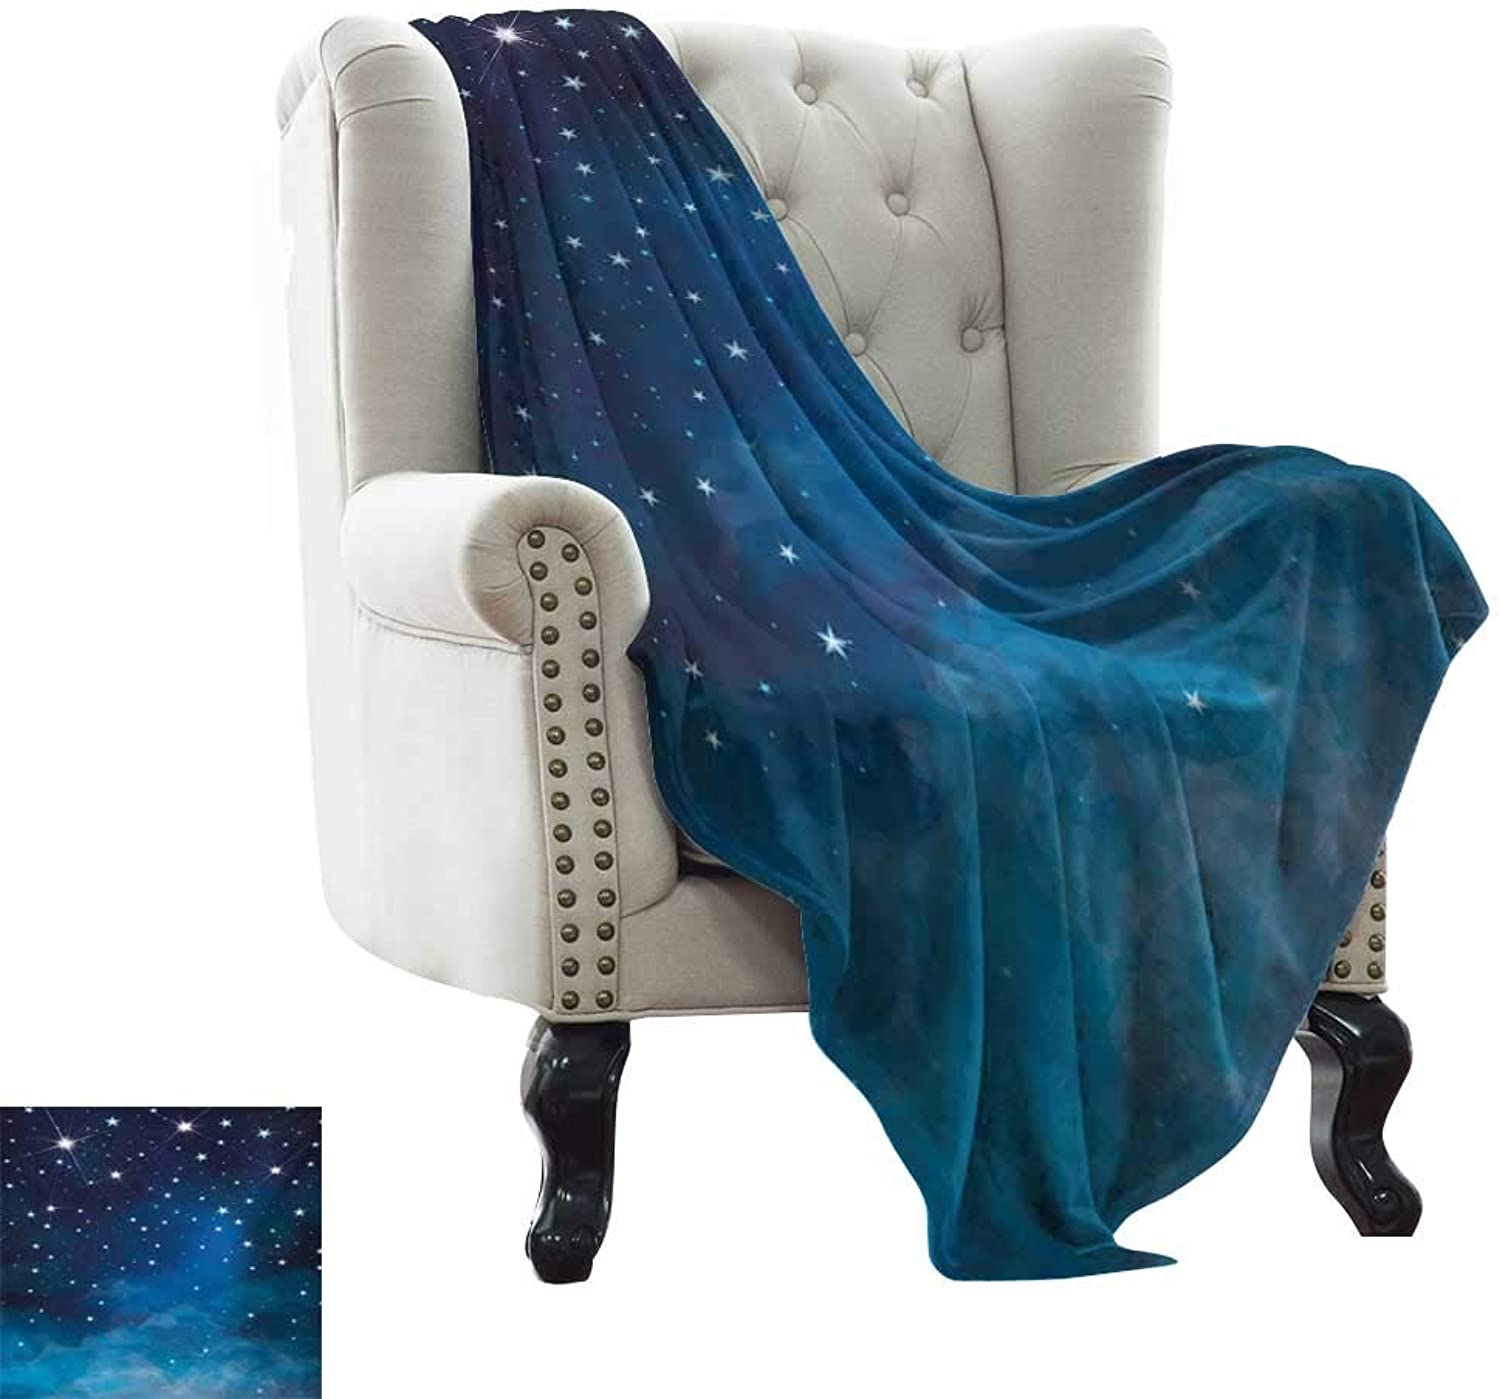 BelleAckerman Weighted Blanket for Kids Night,Vibrant Star in Abstract Ombre Style Sky Astronomy Themed Graphic,Pale bluee Dark bluee White Lightweight Microfiber,All Season for Couch or Bed 50 x60